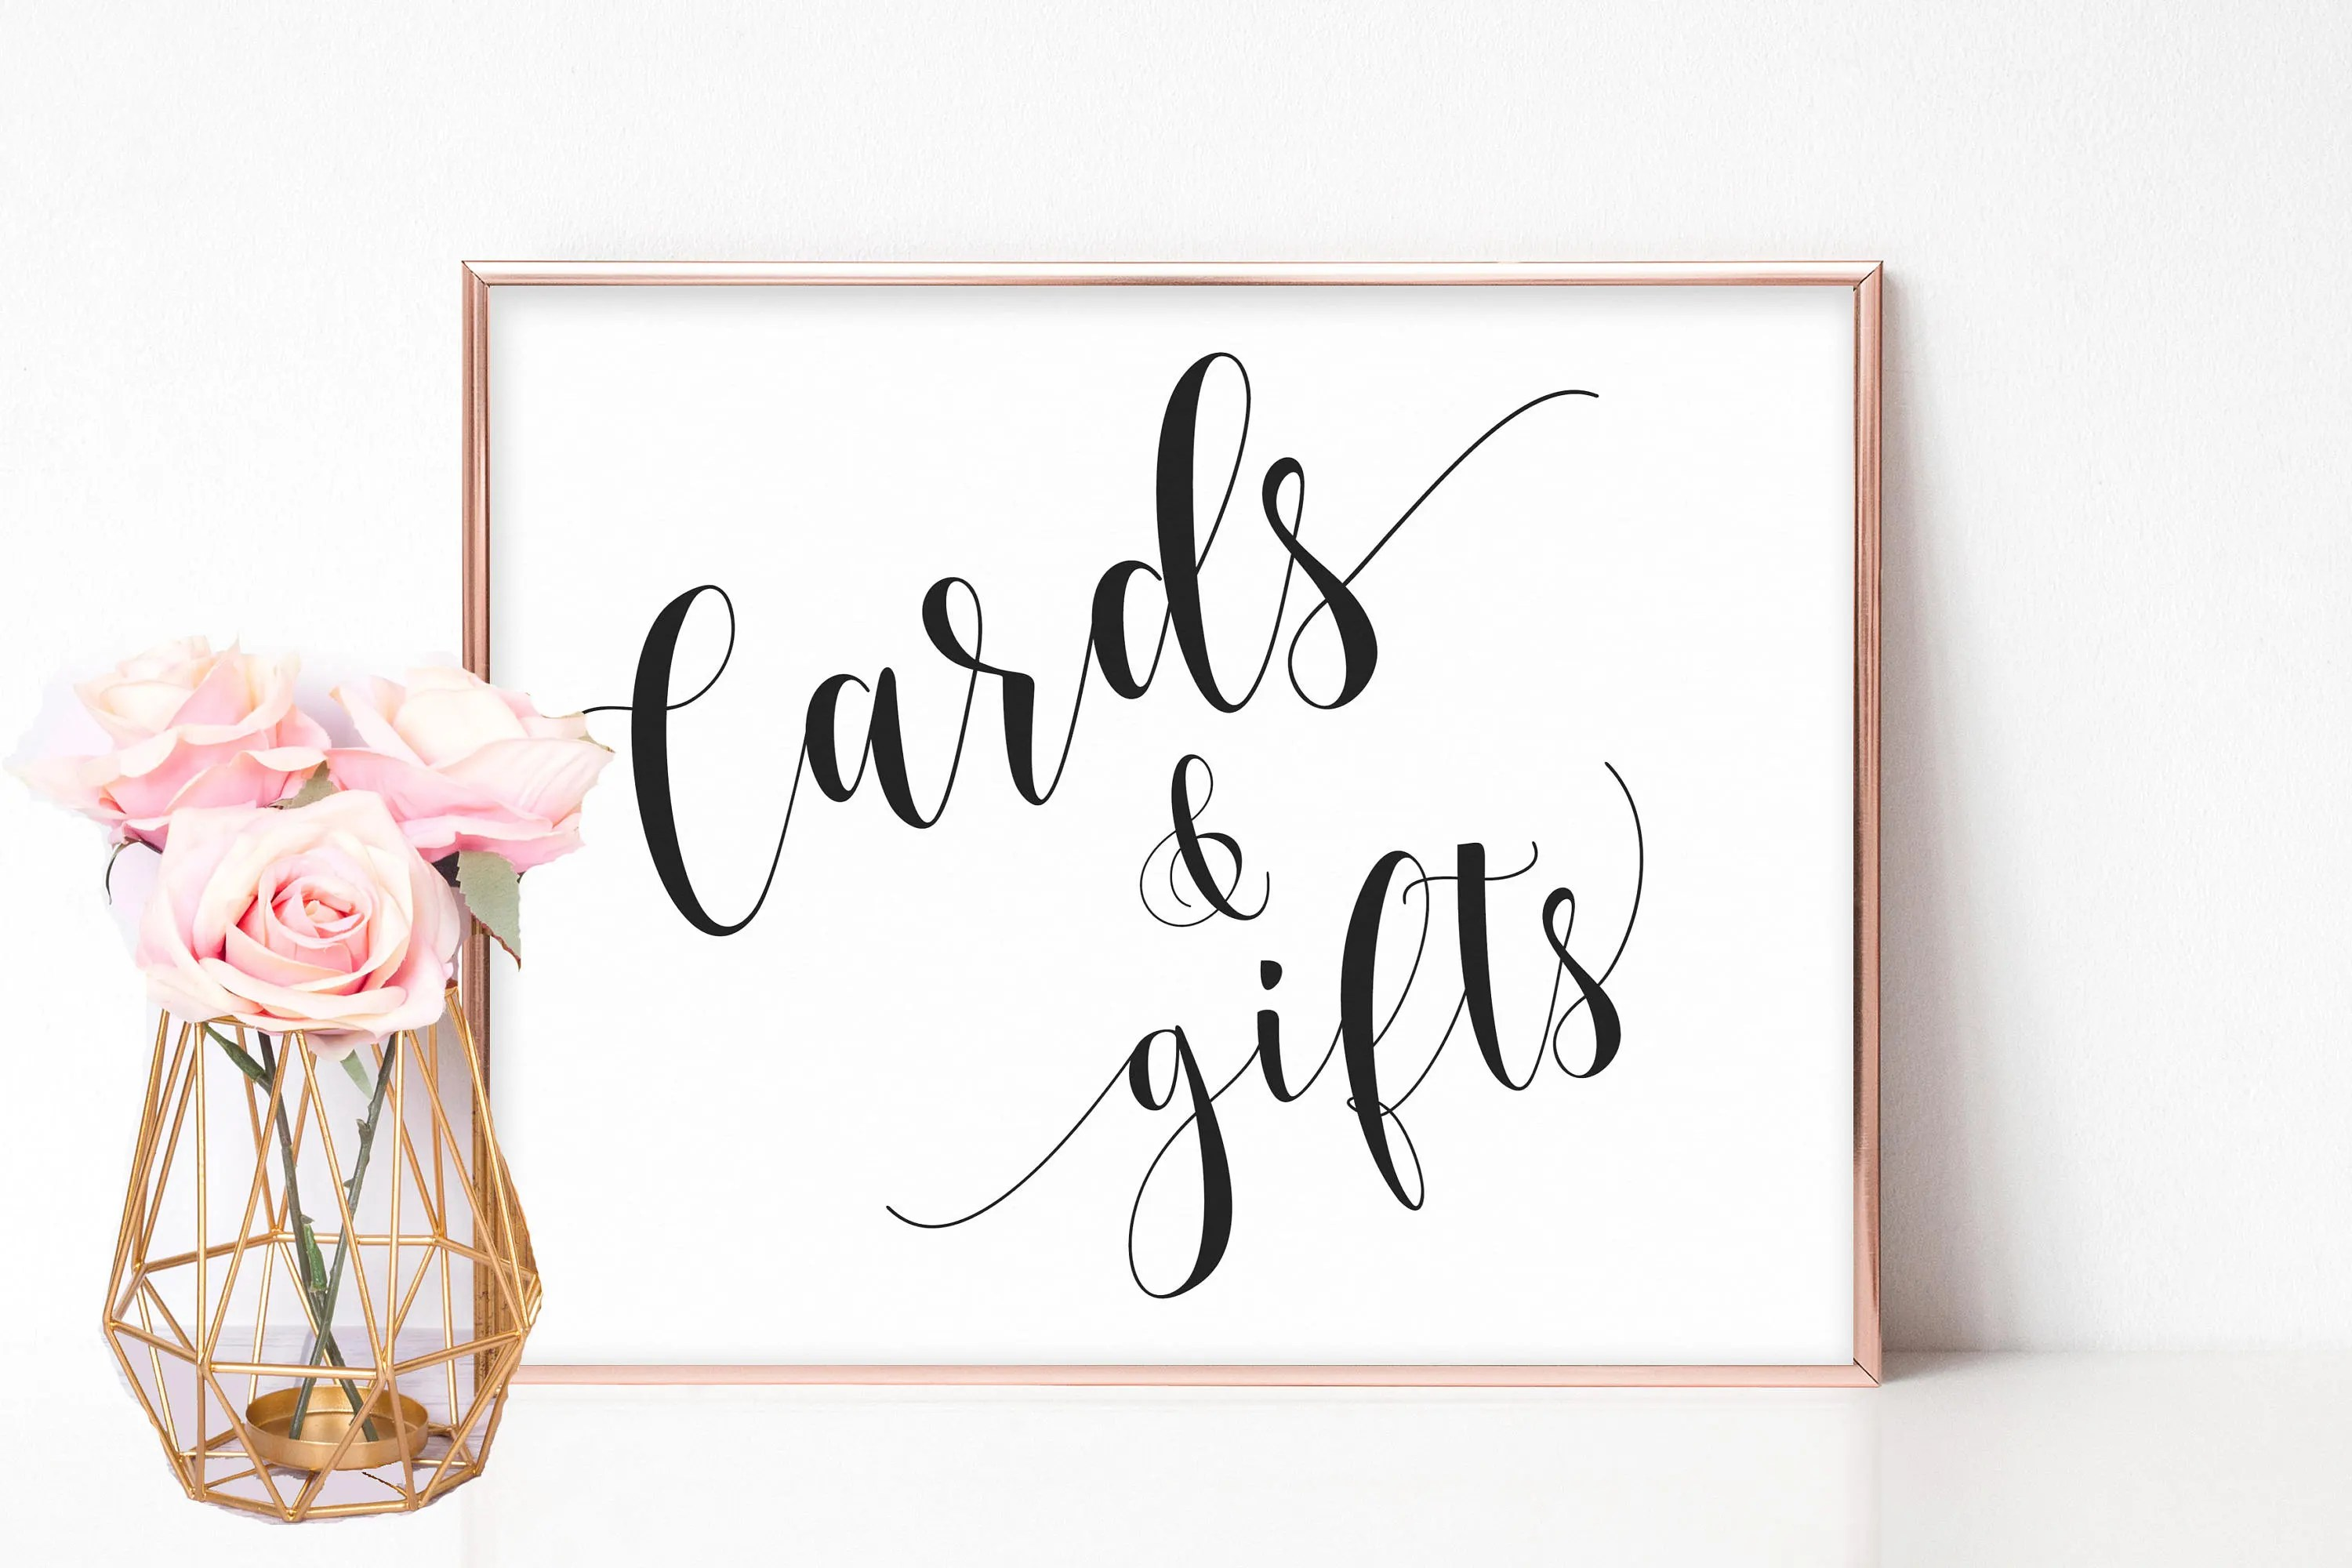 Cards And Gifts Sign Printable Gift Table Sign Cards Sign Gifts Sign Wedding Wedding Gift Table Baby Shower Signs Bridal Shower Signs